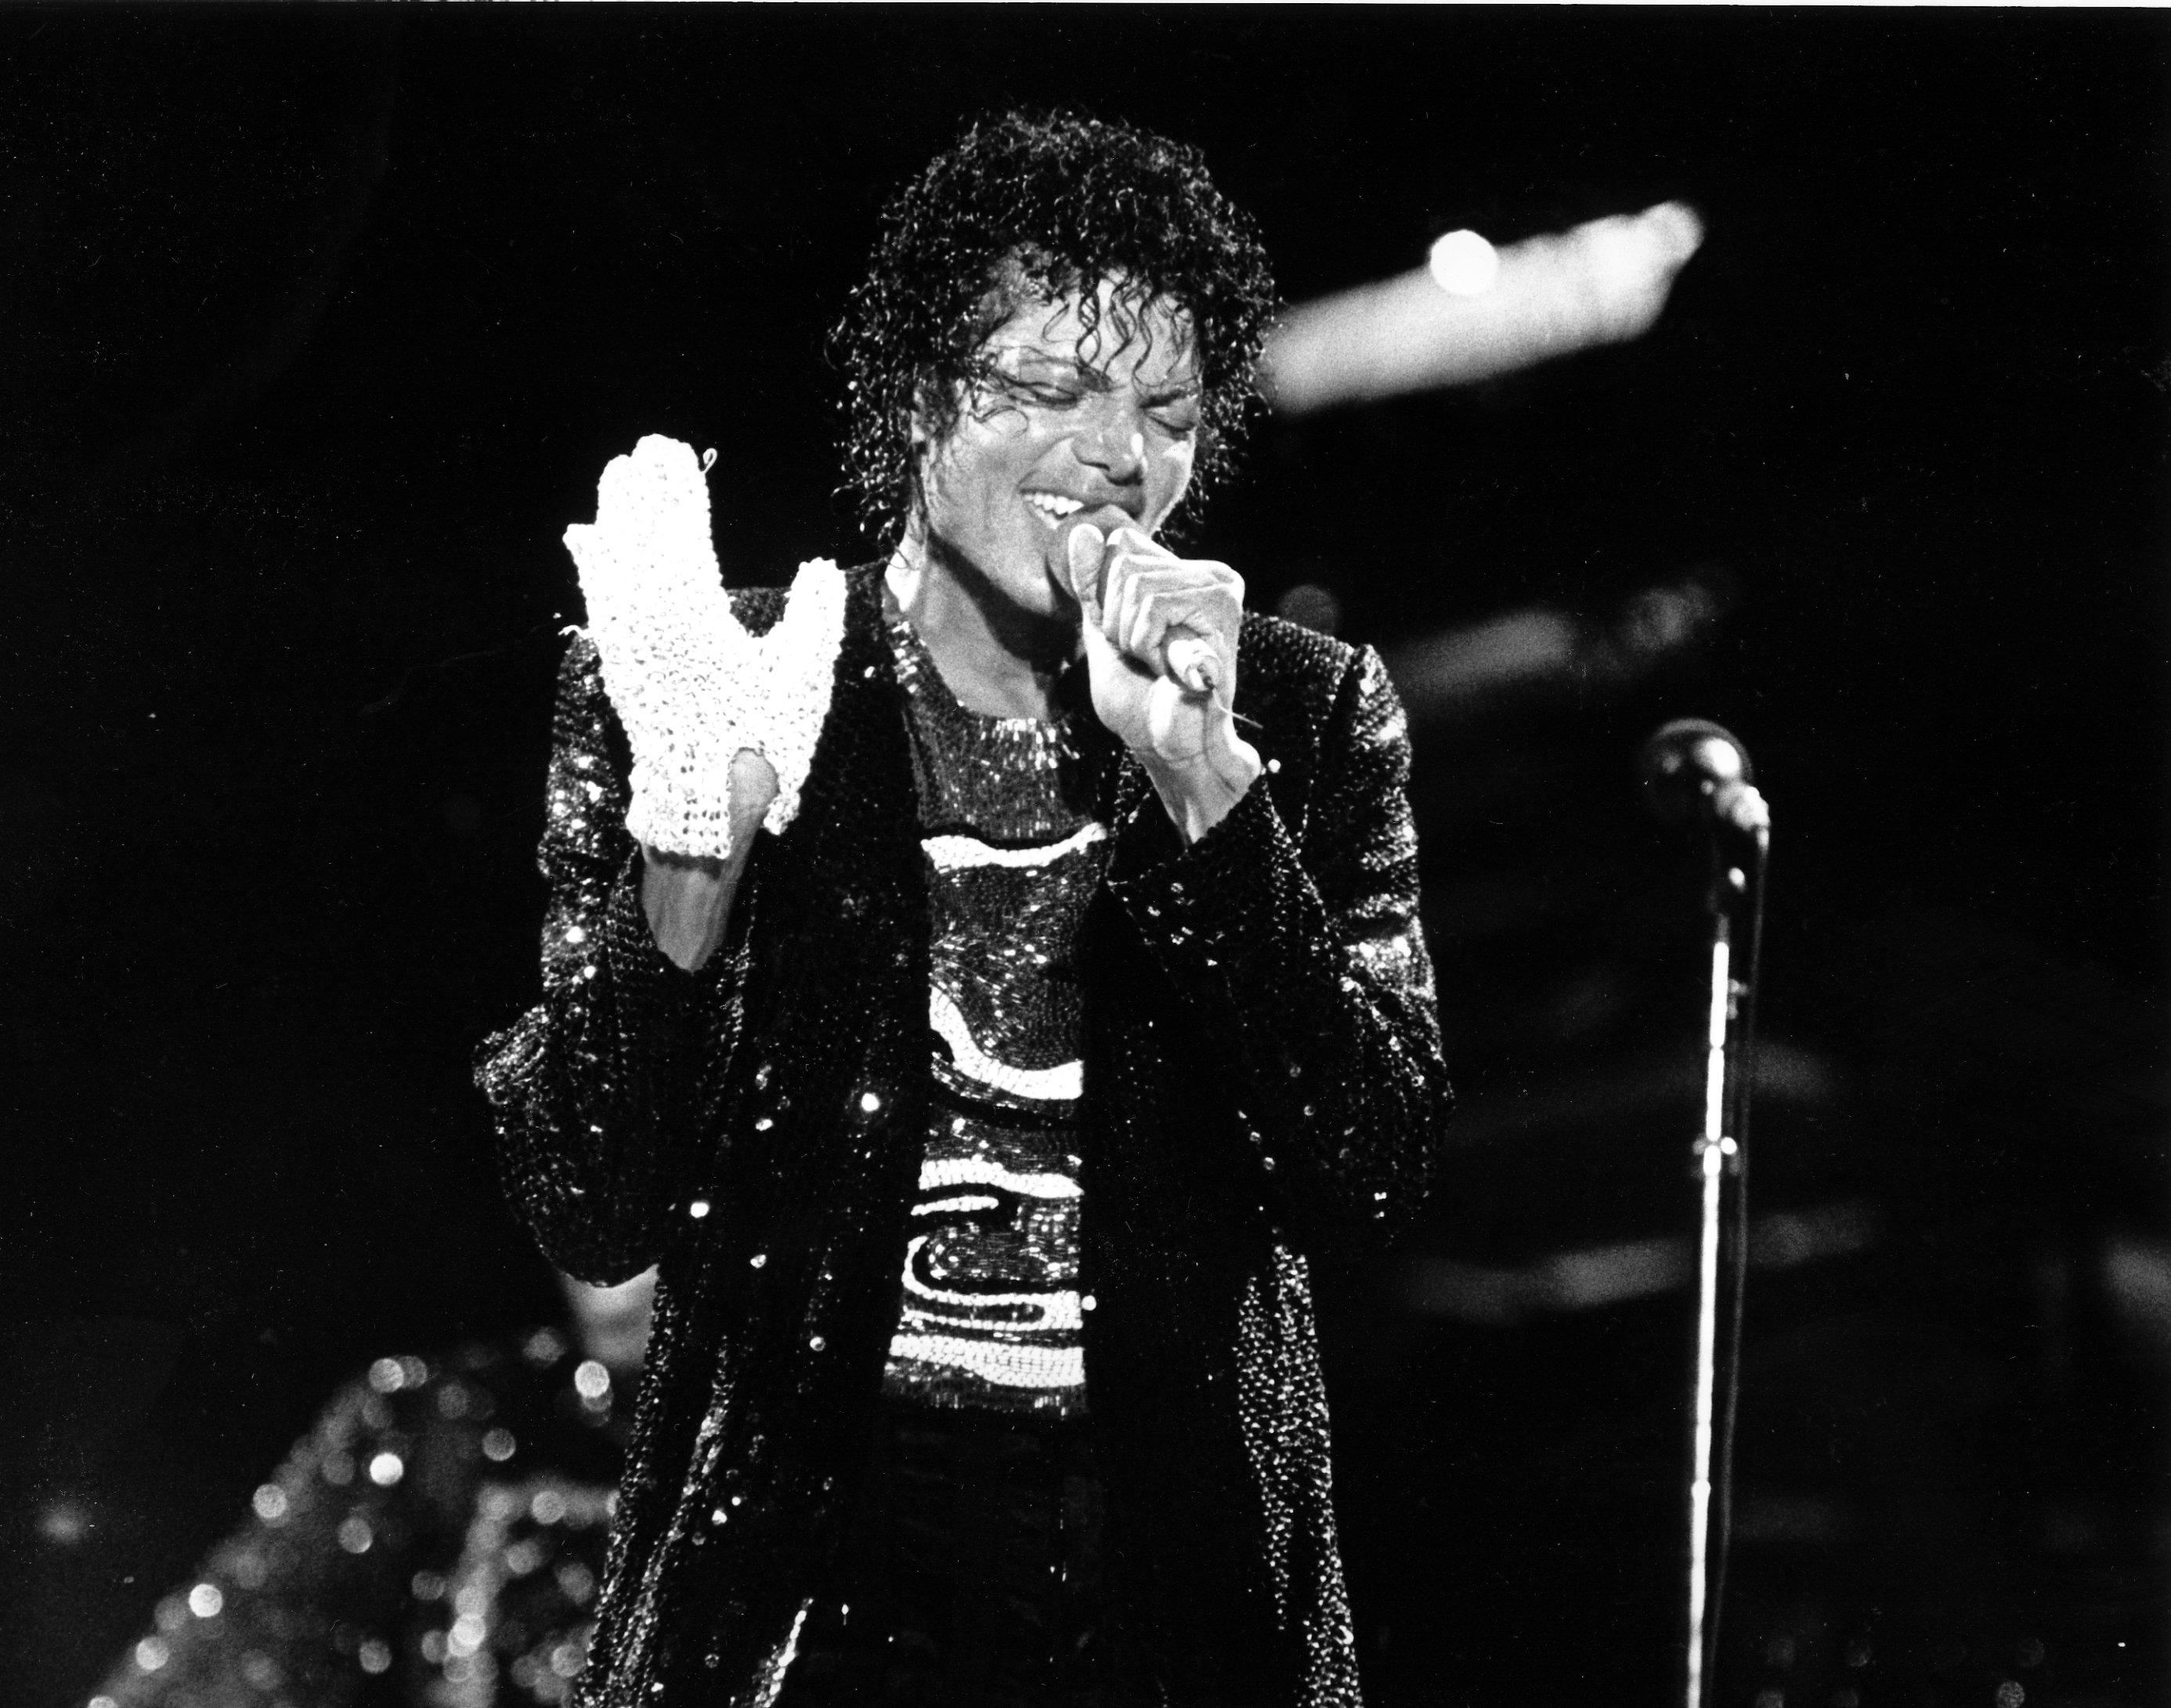 In this July 7, 1984 file photo, Michael Jackson wears a white glove during his performance kicking off the  Victory Tour  at Arrowhead Stadium in Kansas City, Mo.